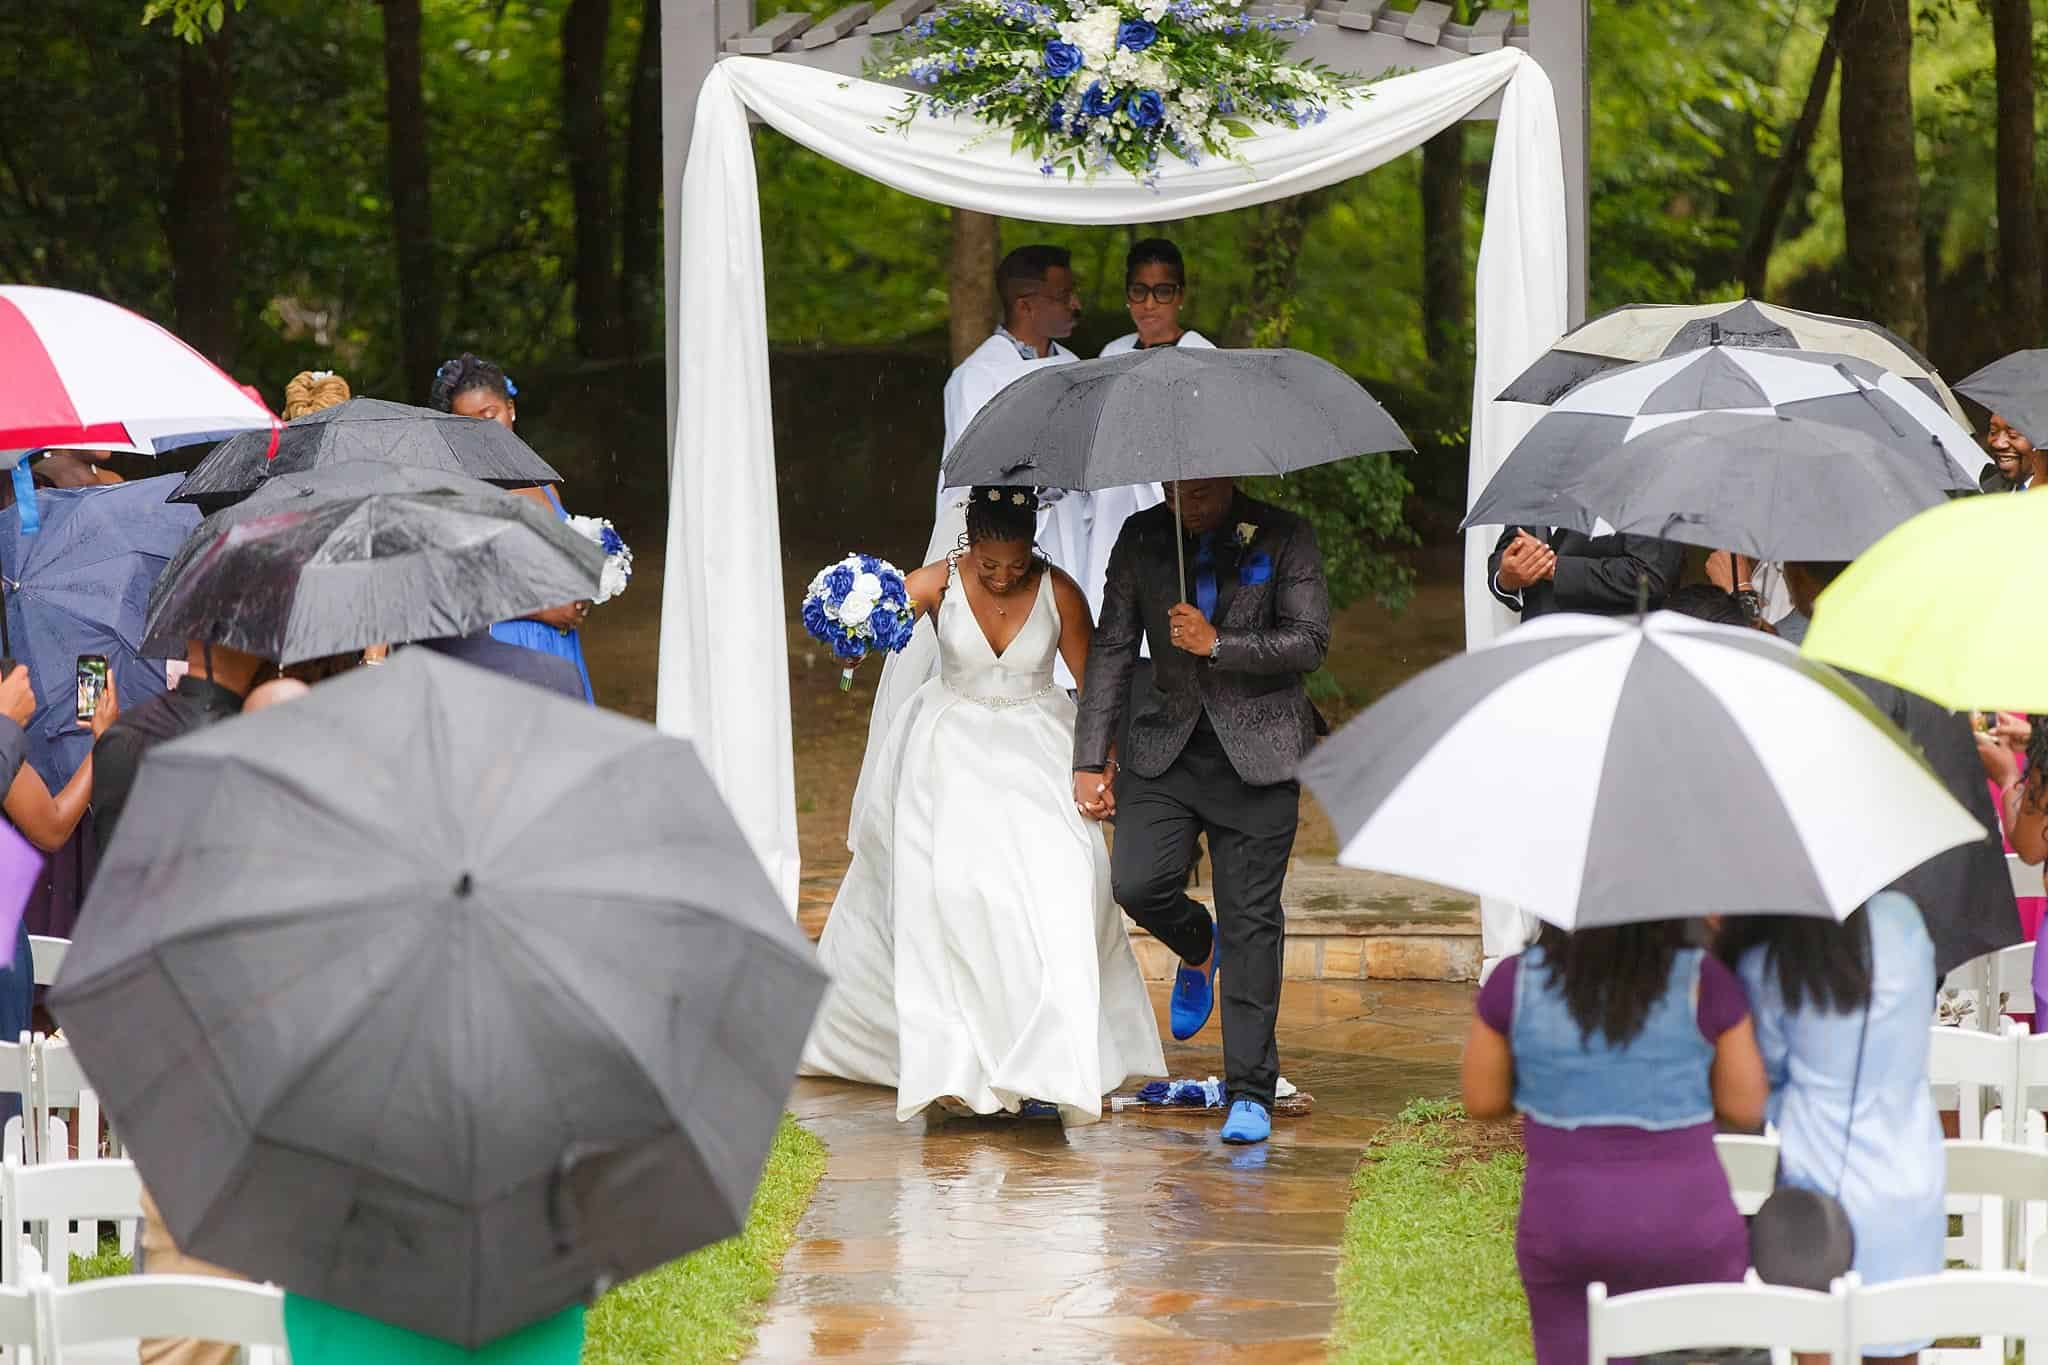 Bride and Groom leaving wedding altar in the rain after jumping the broom